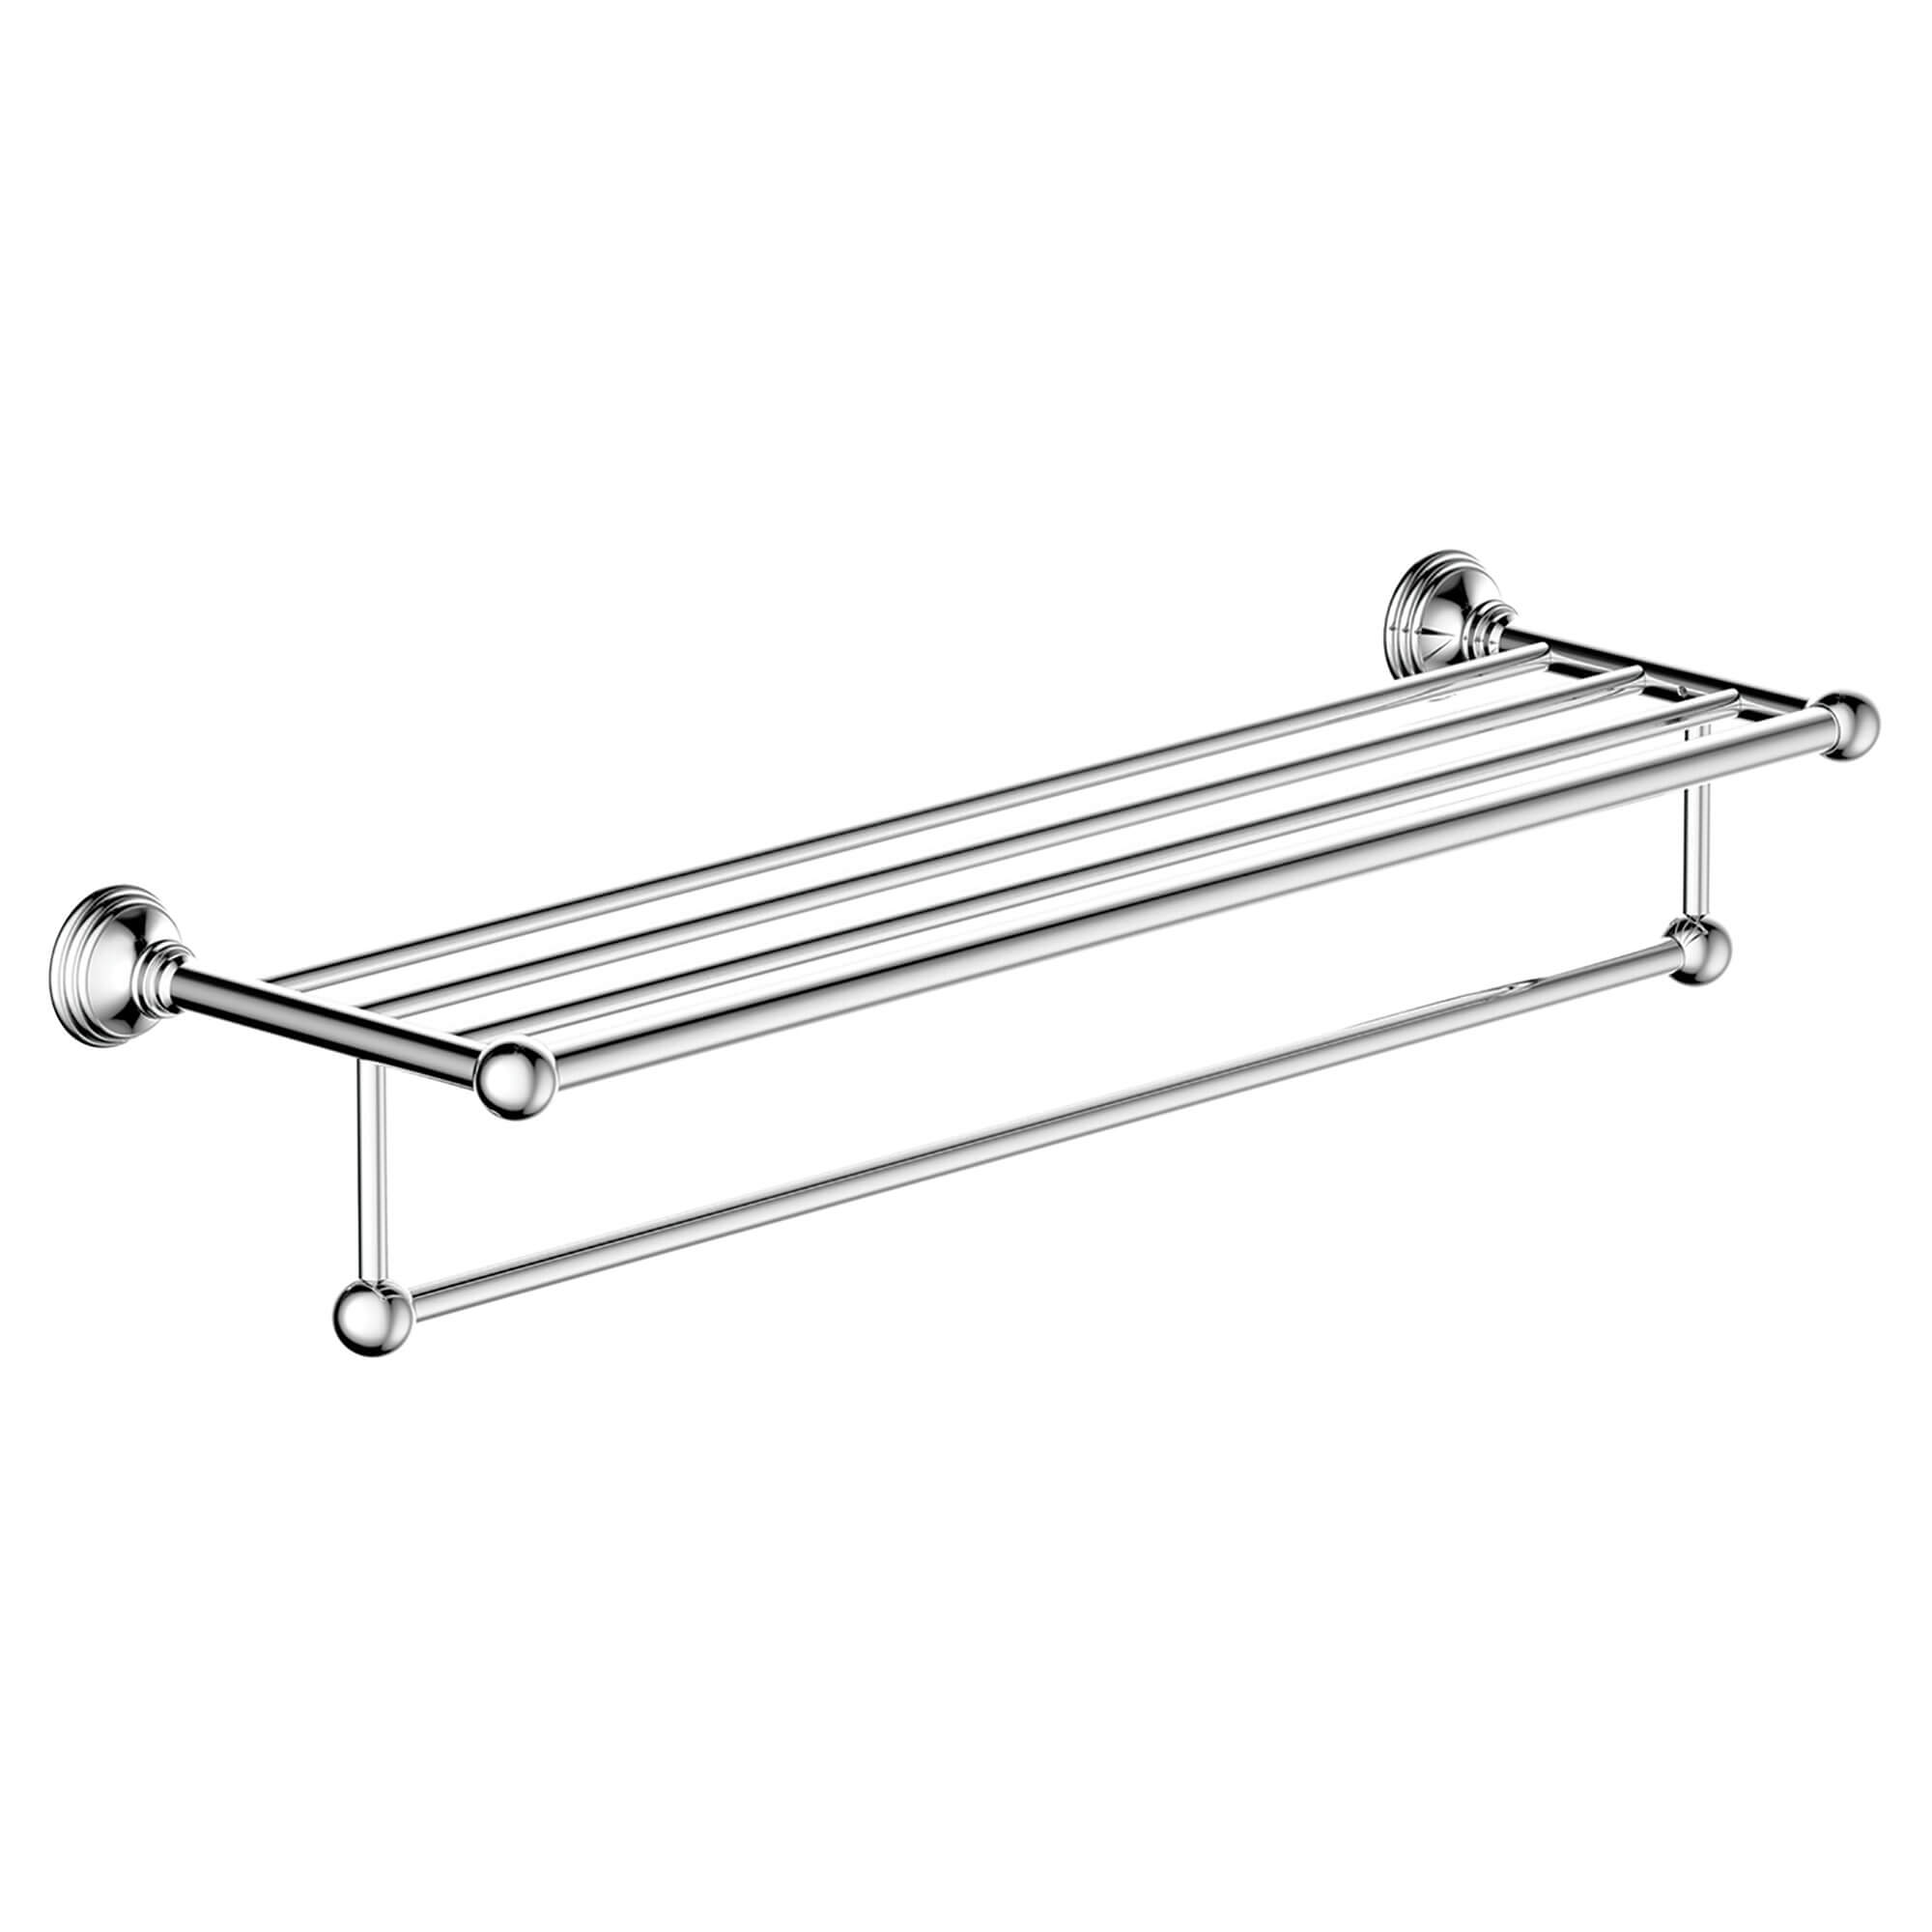 Traditional Towel Rack - Projects Model